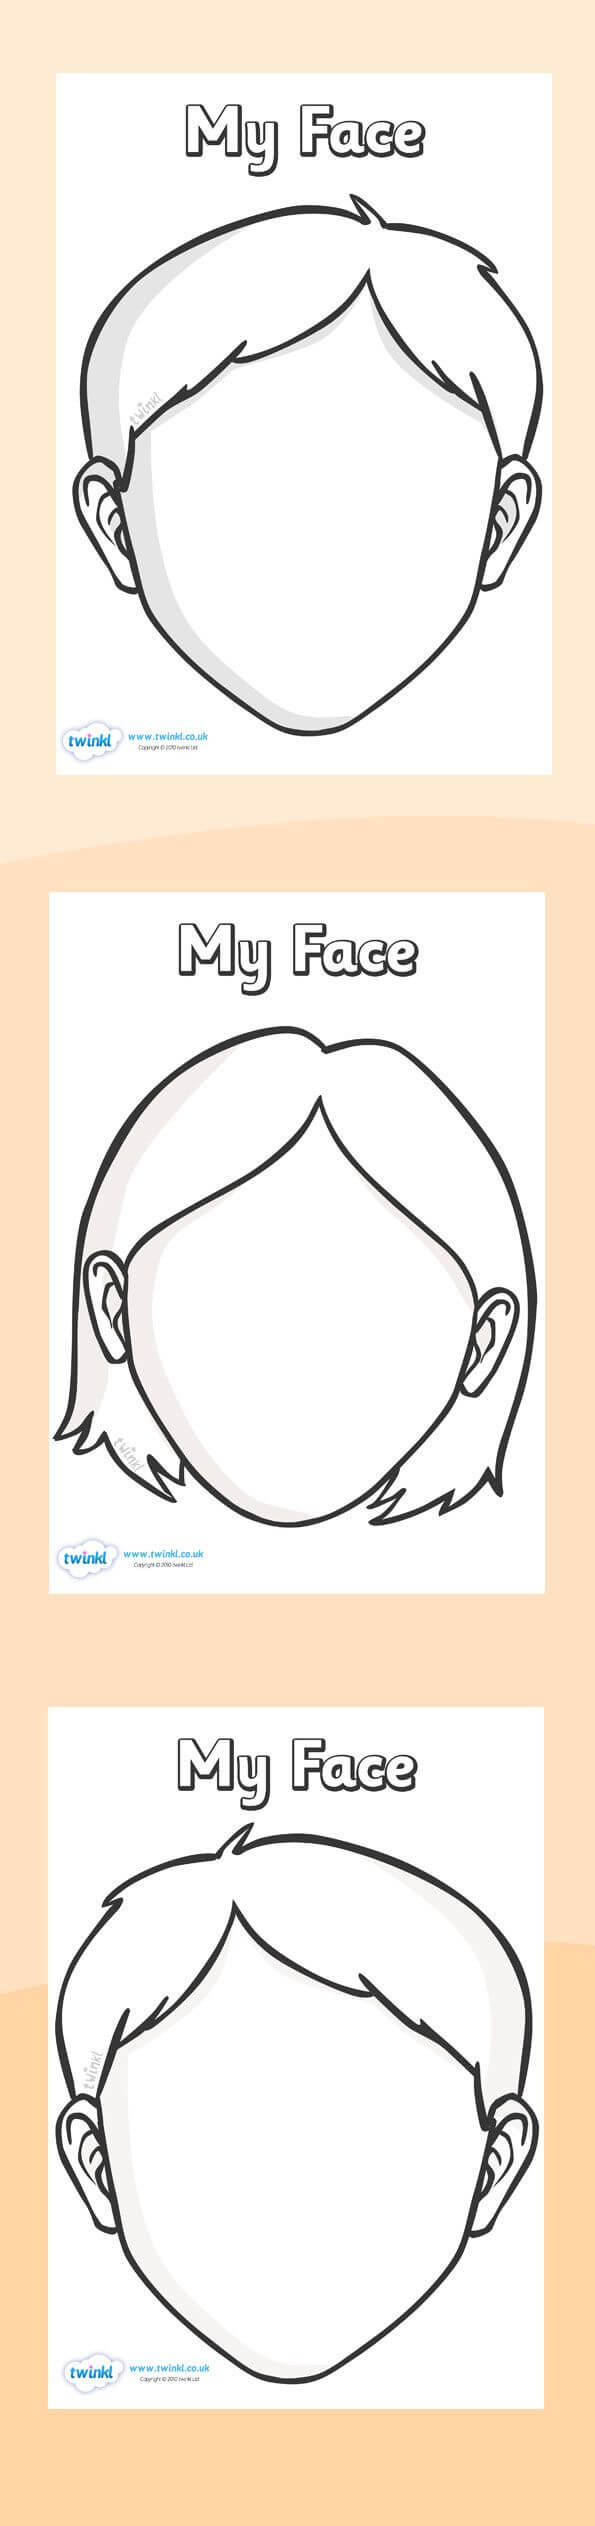 Twinkl Resources >> Blank Face Templates With Face Features In Blank Face Template Preschool